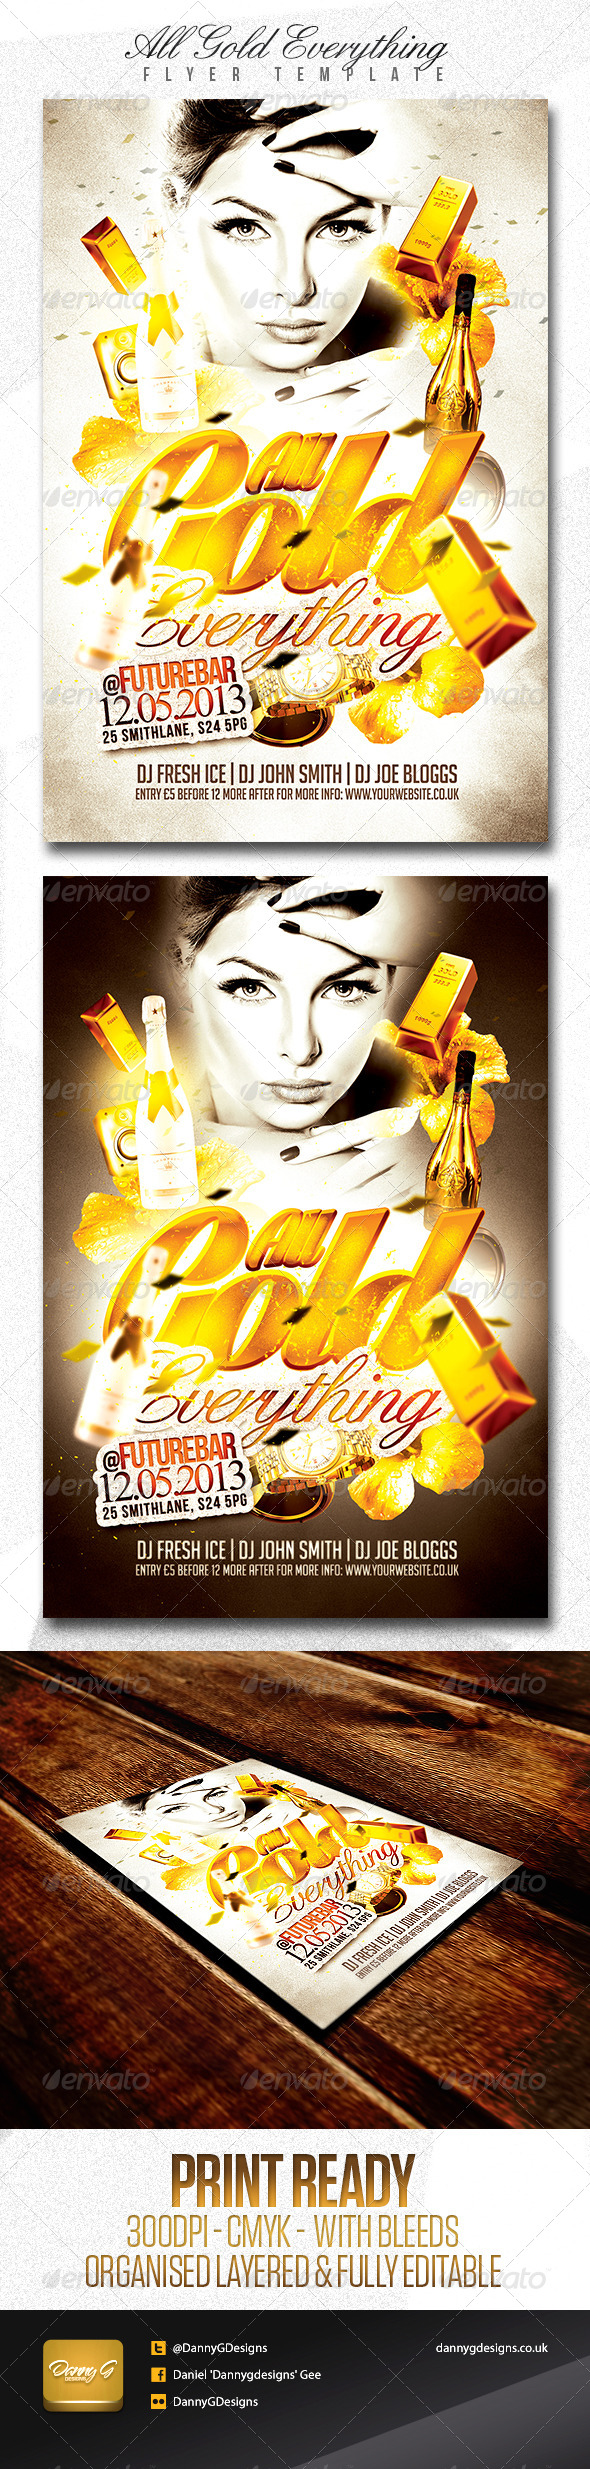 All Gold Everything Flyer Template - Clubs & Parties Events